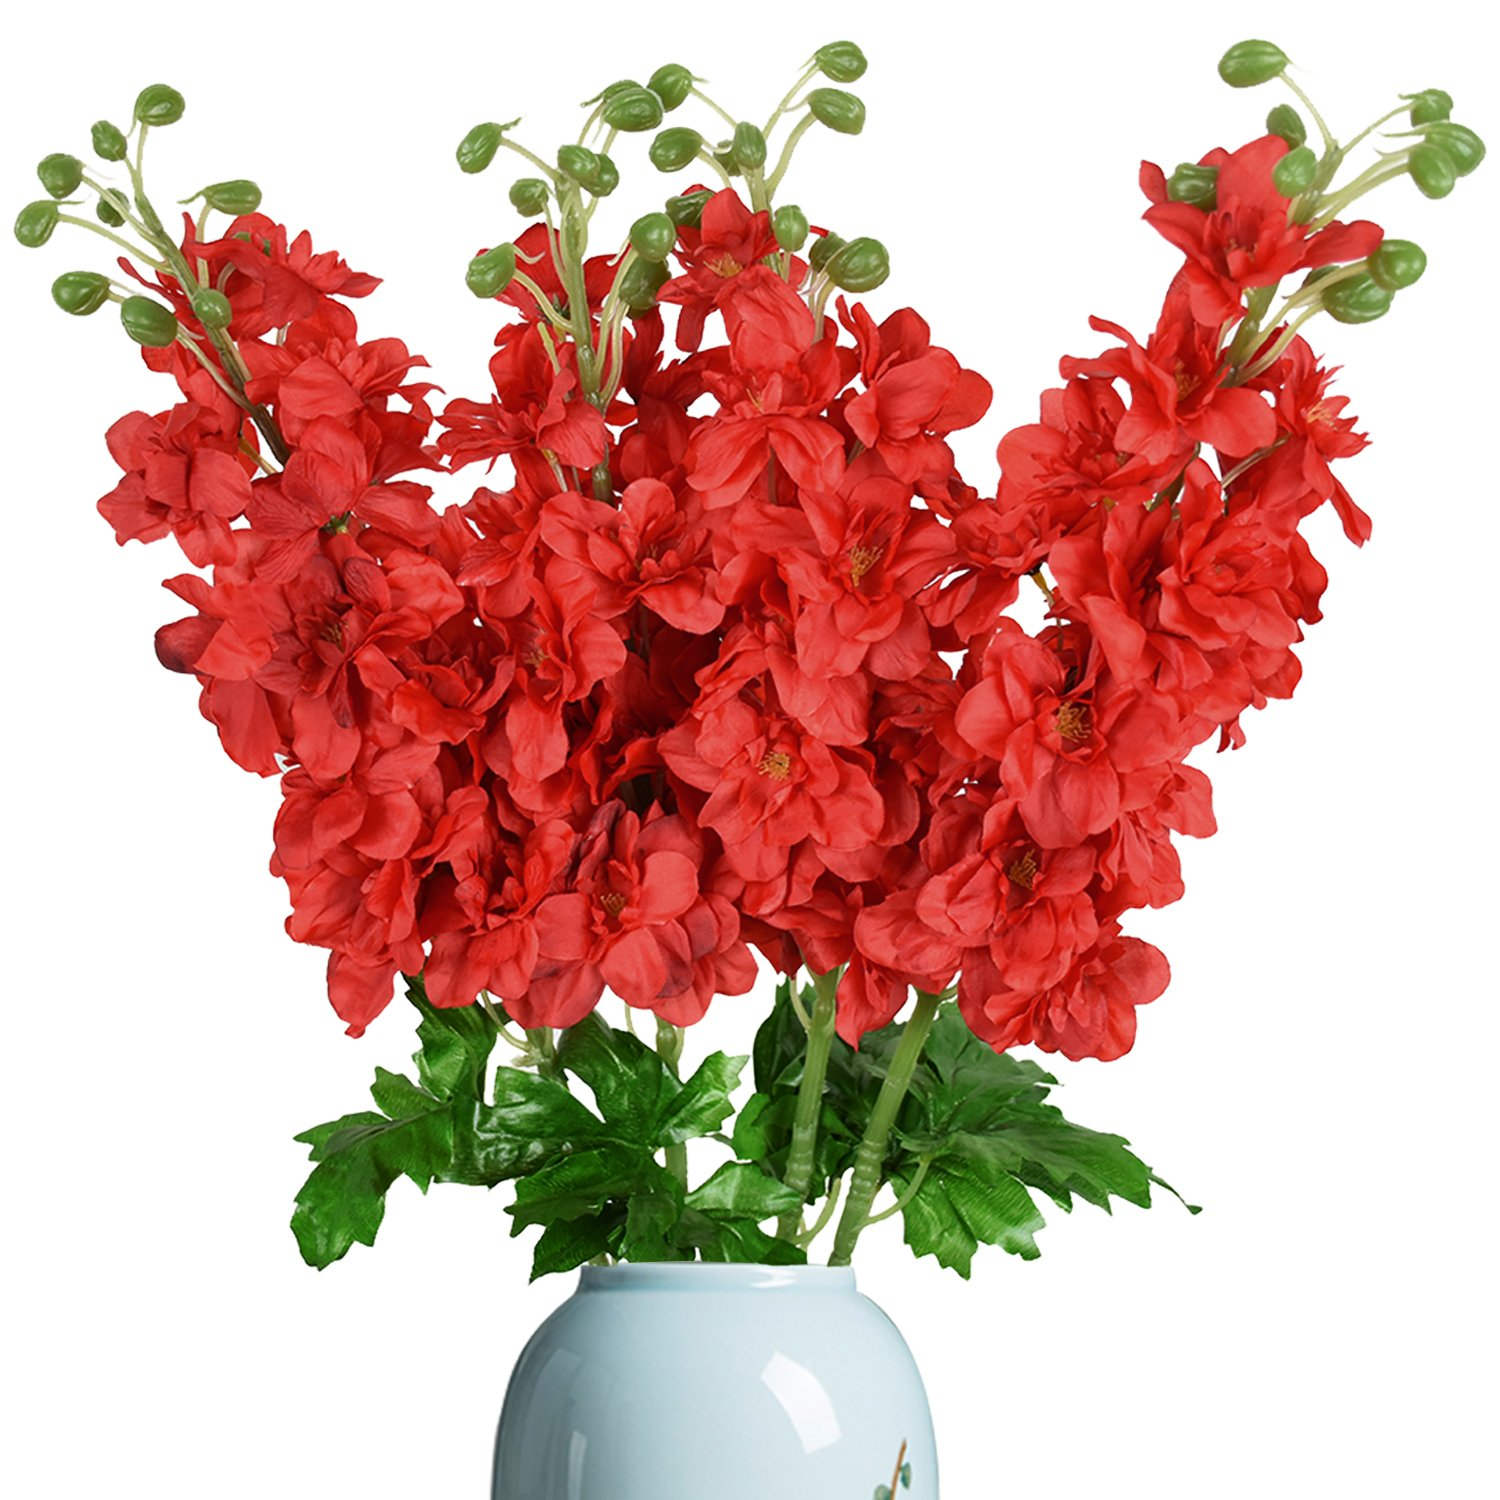 SUNMブティック4パック人工Delphinium Flowers with Full Blooming人工花植物ウェディングホーム装飾 Pack of 4 レッド B07F252DN8 レッド Pack of 4